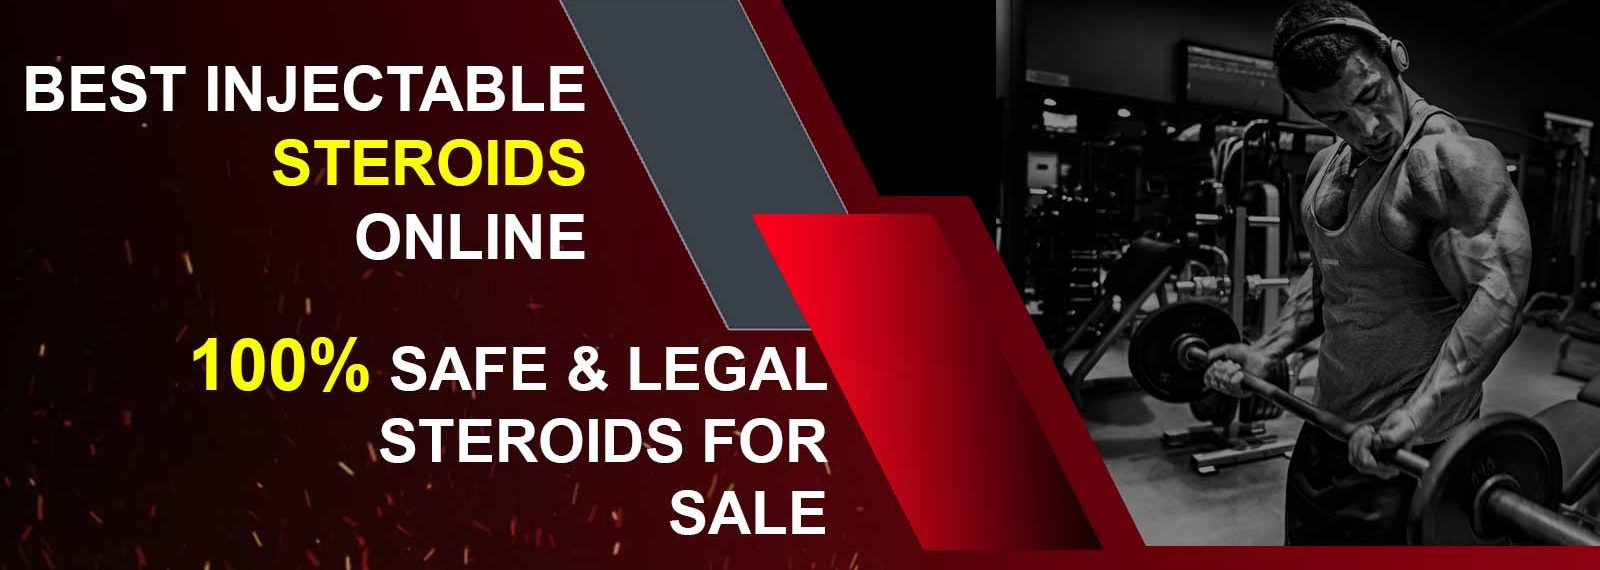 Super sale on steroids online